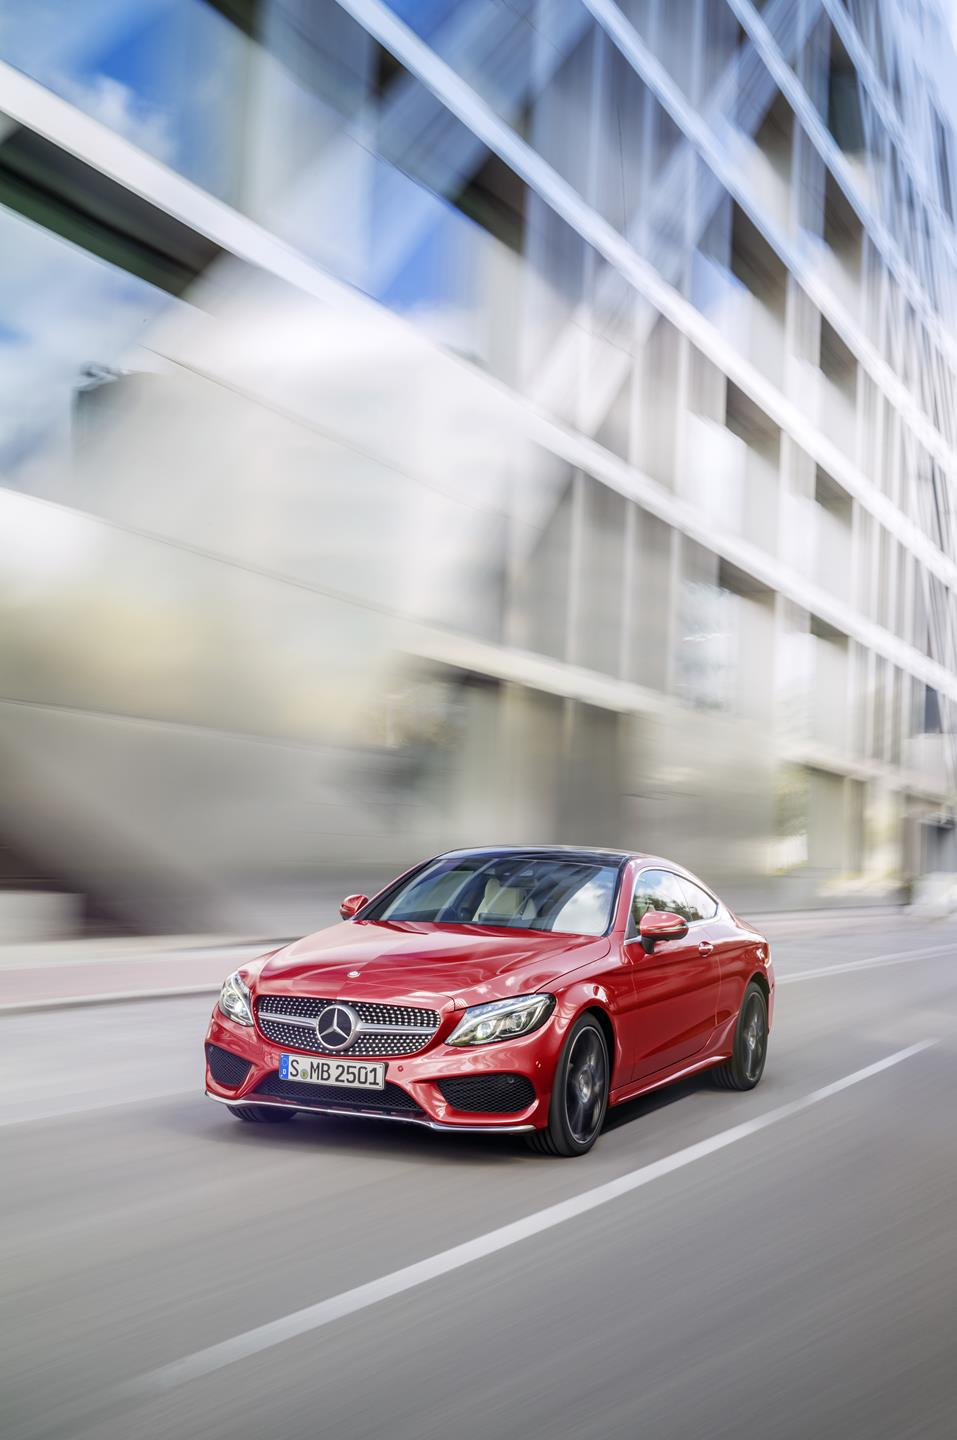 2017 mercedes benz c300 images photo 2017 mercedes benz for Mercedes benz credit